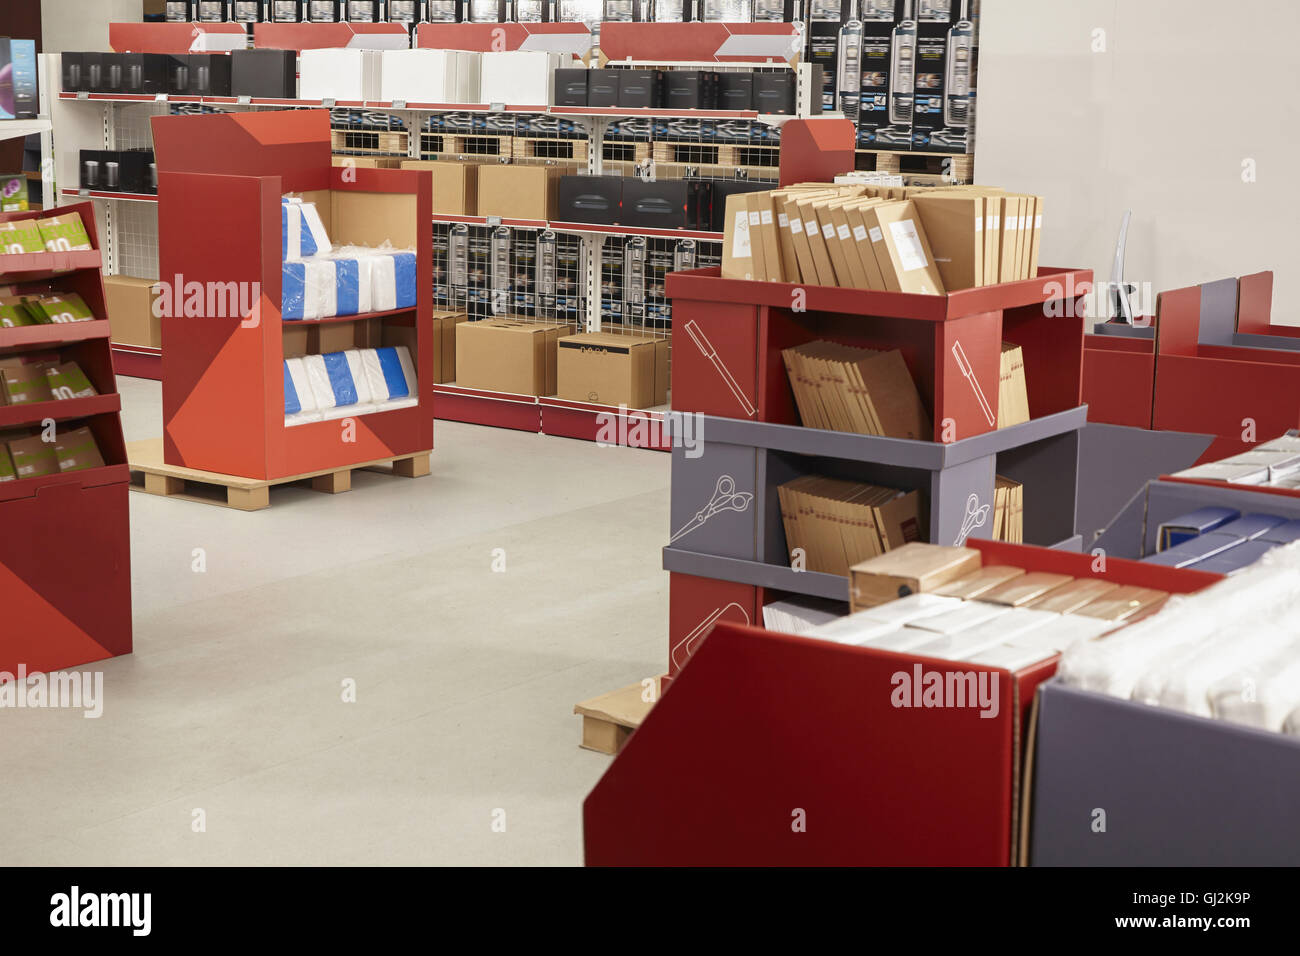 Product display in printing and packaging factory shop, China - Stock Image